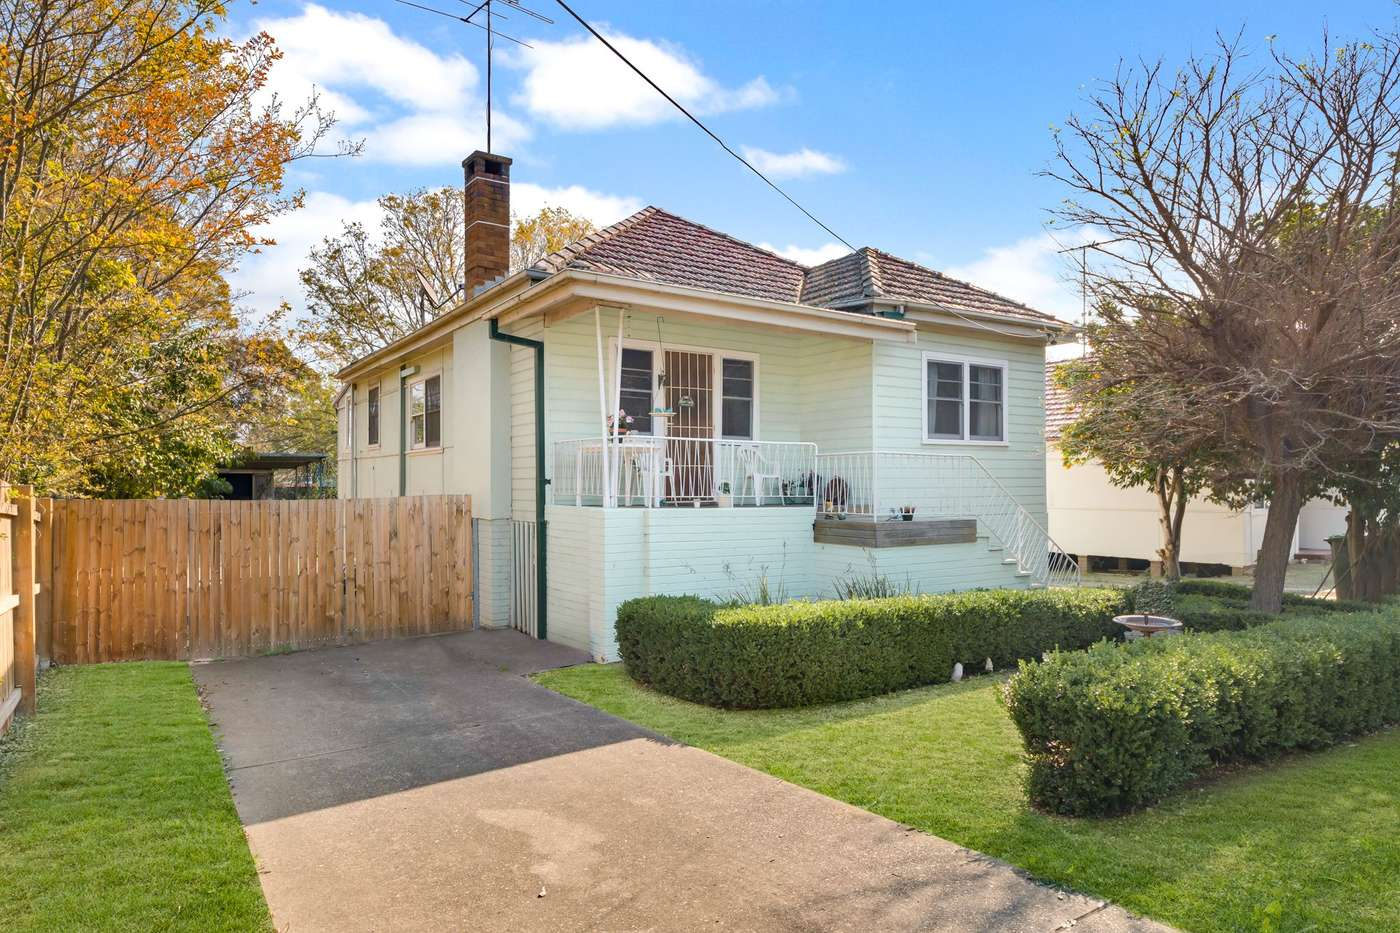 Main view of Homely house listing, 19 Edward Street, Camden, NSW 2570